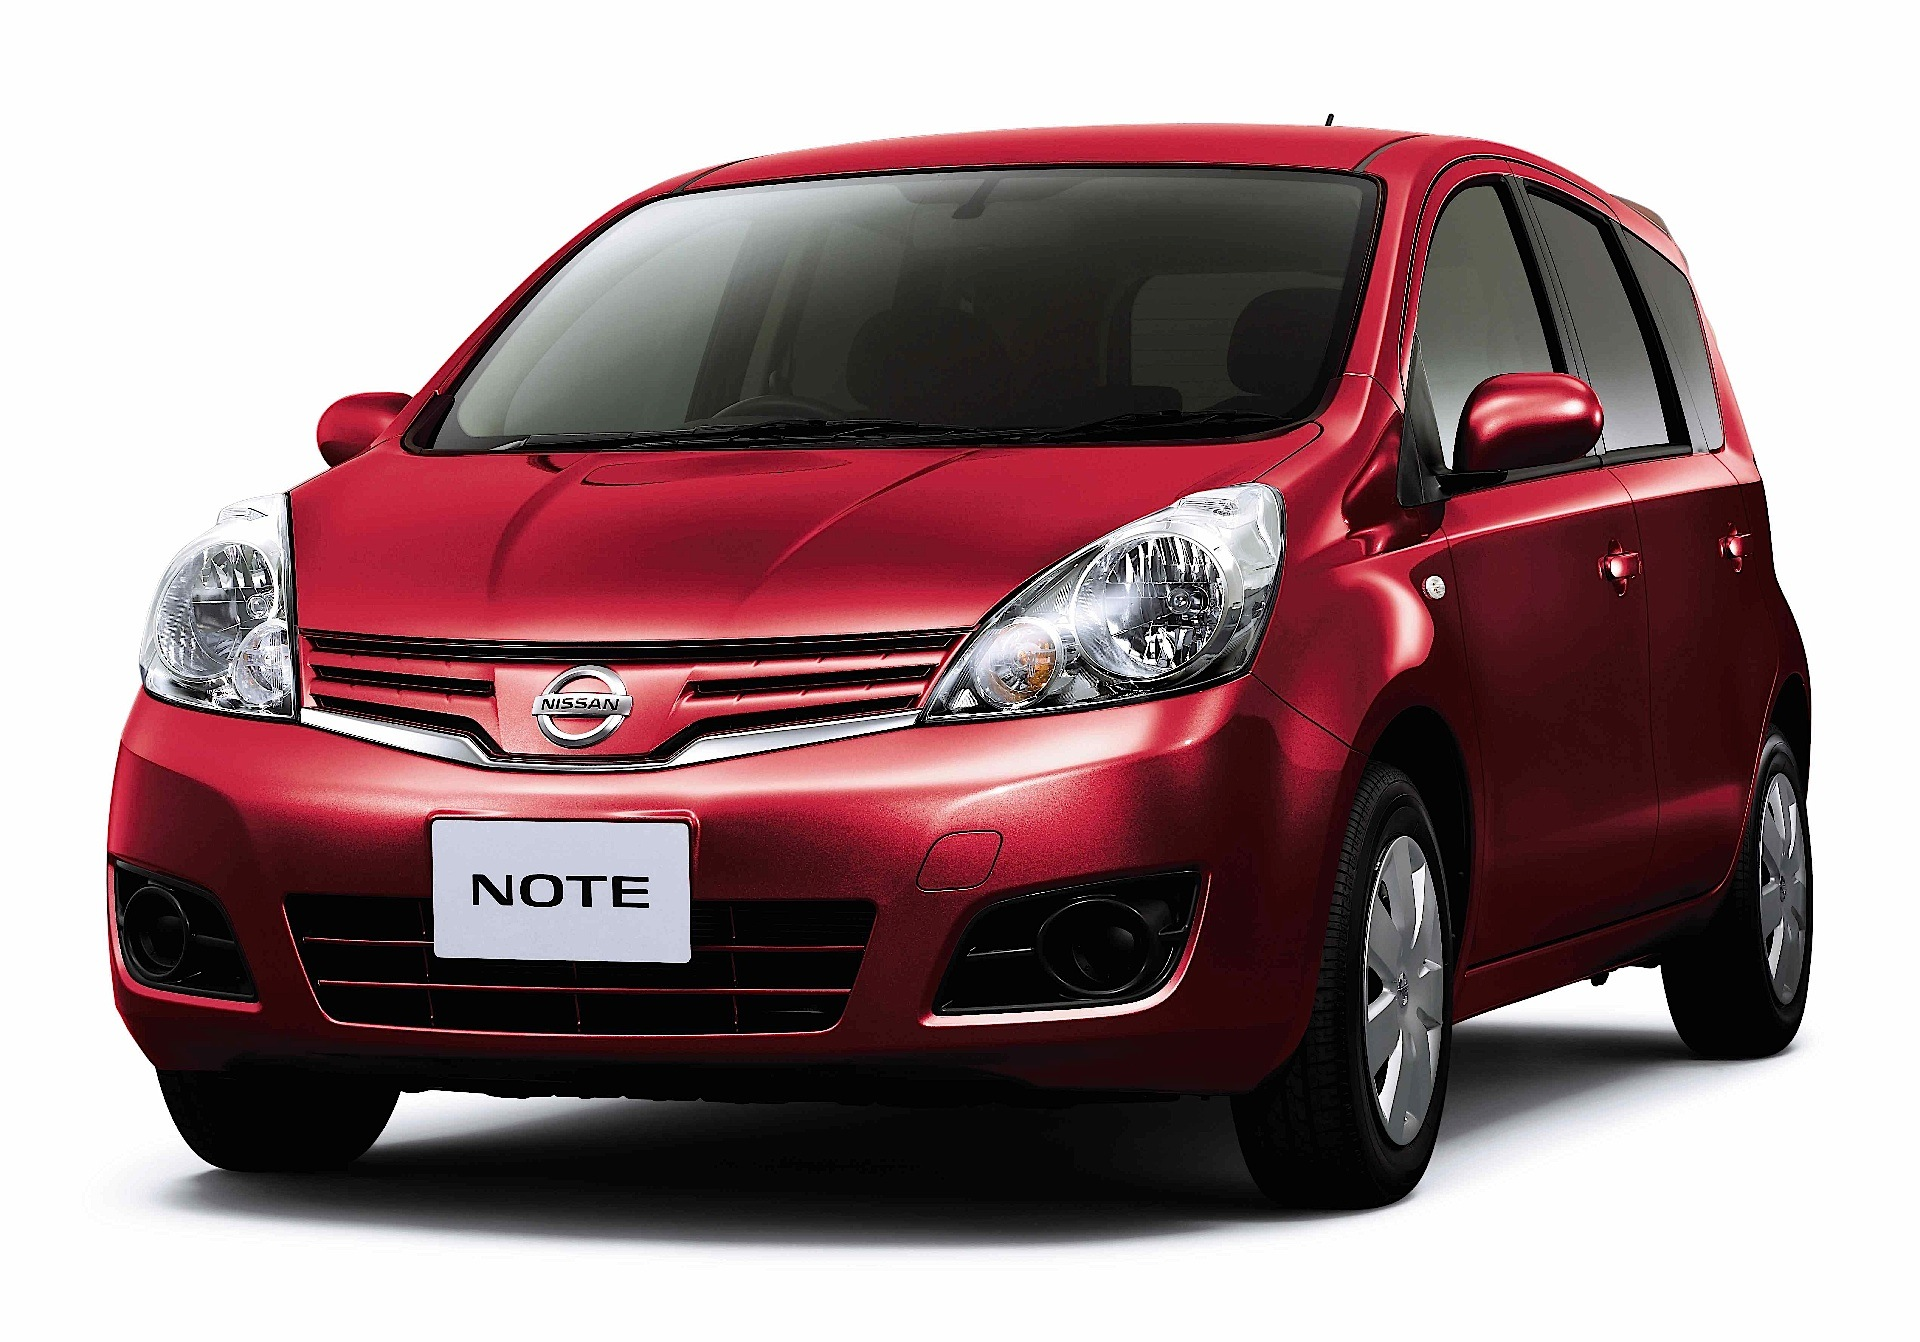 2012 nissan note pictures information and specs auto. Black Bedroom Furniture Sets. Home Design Ideas